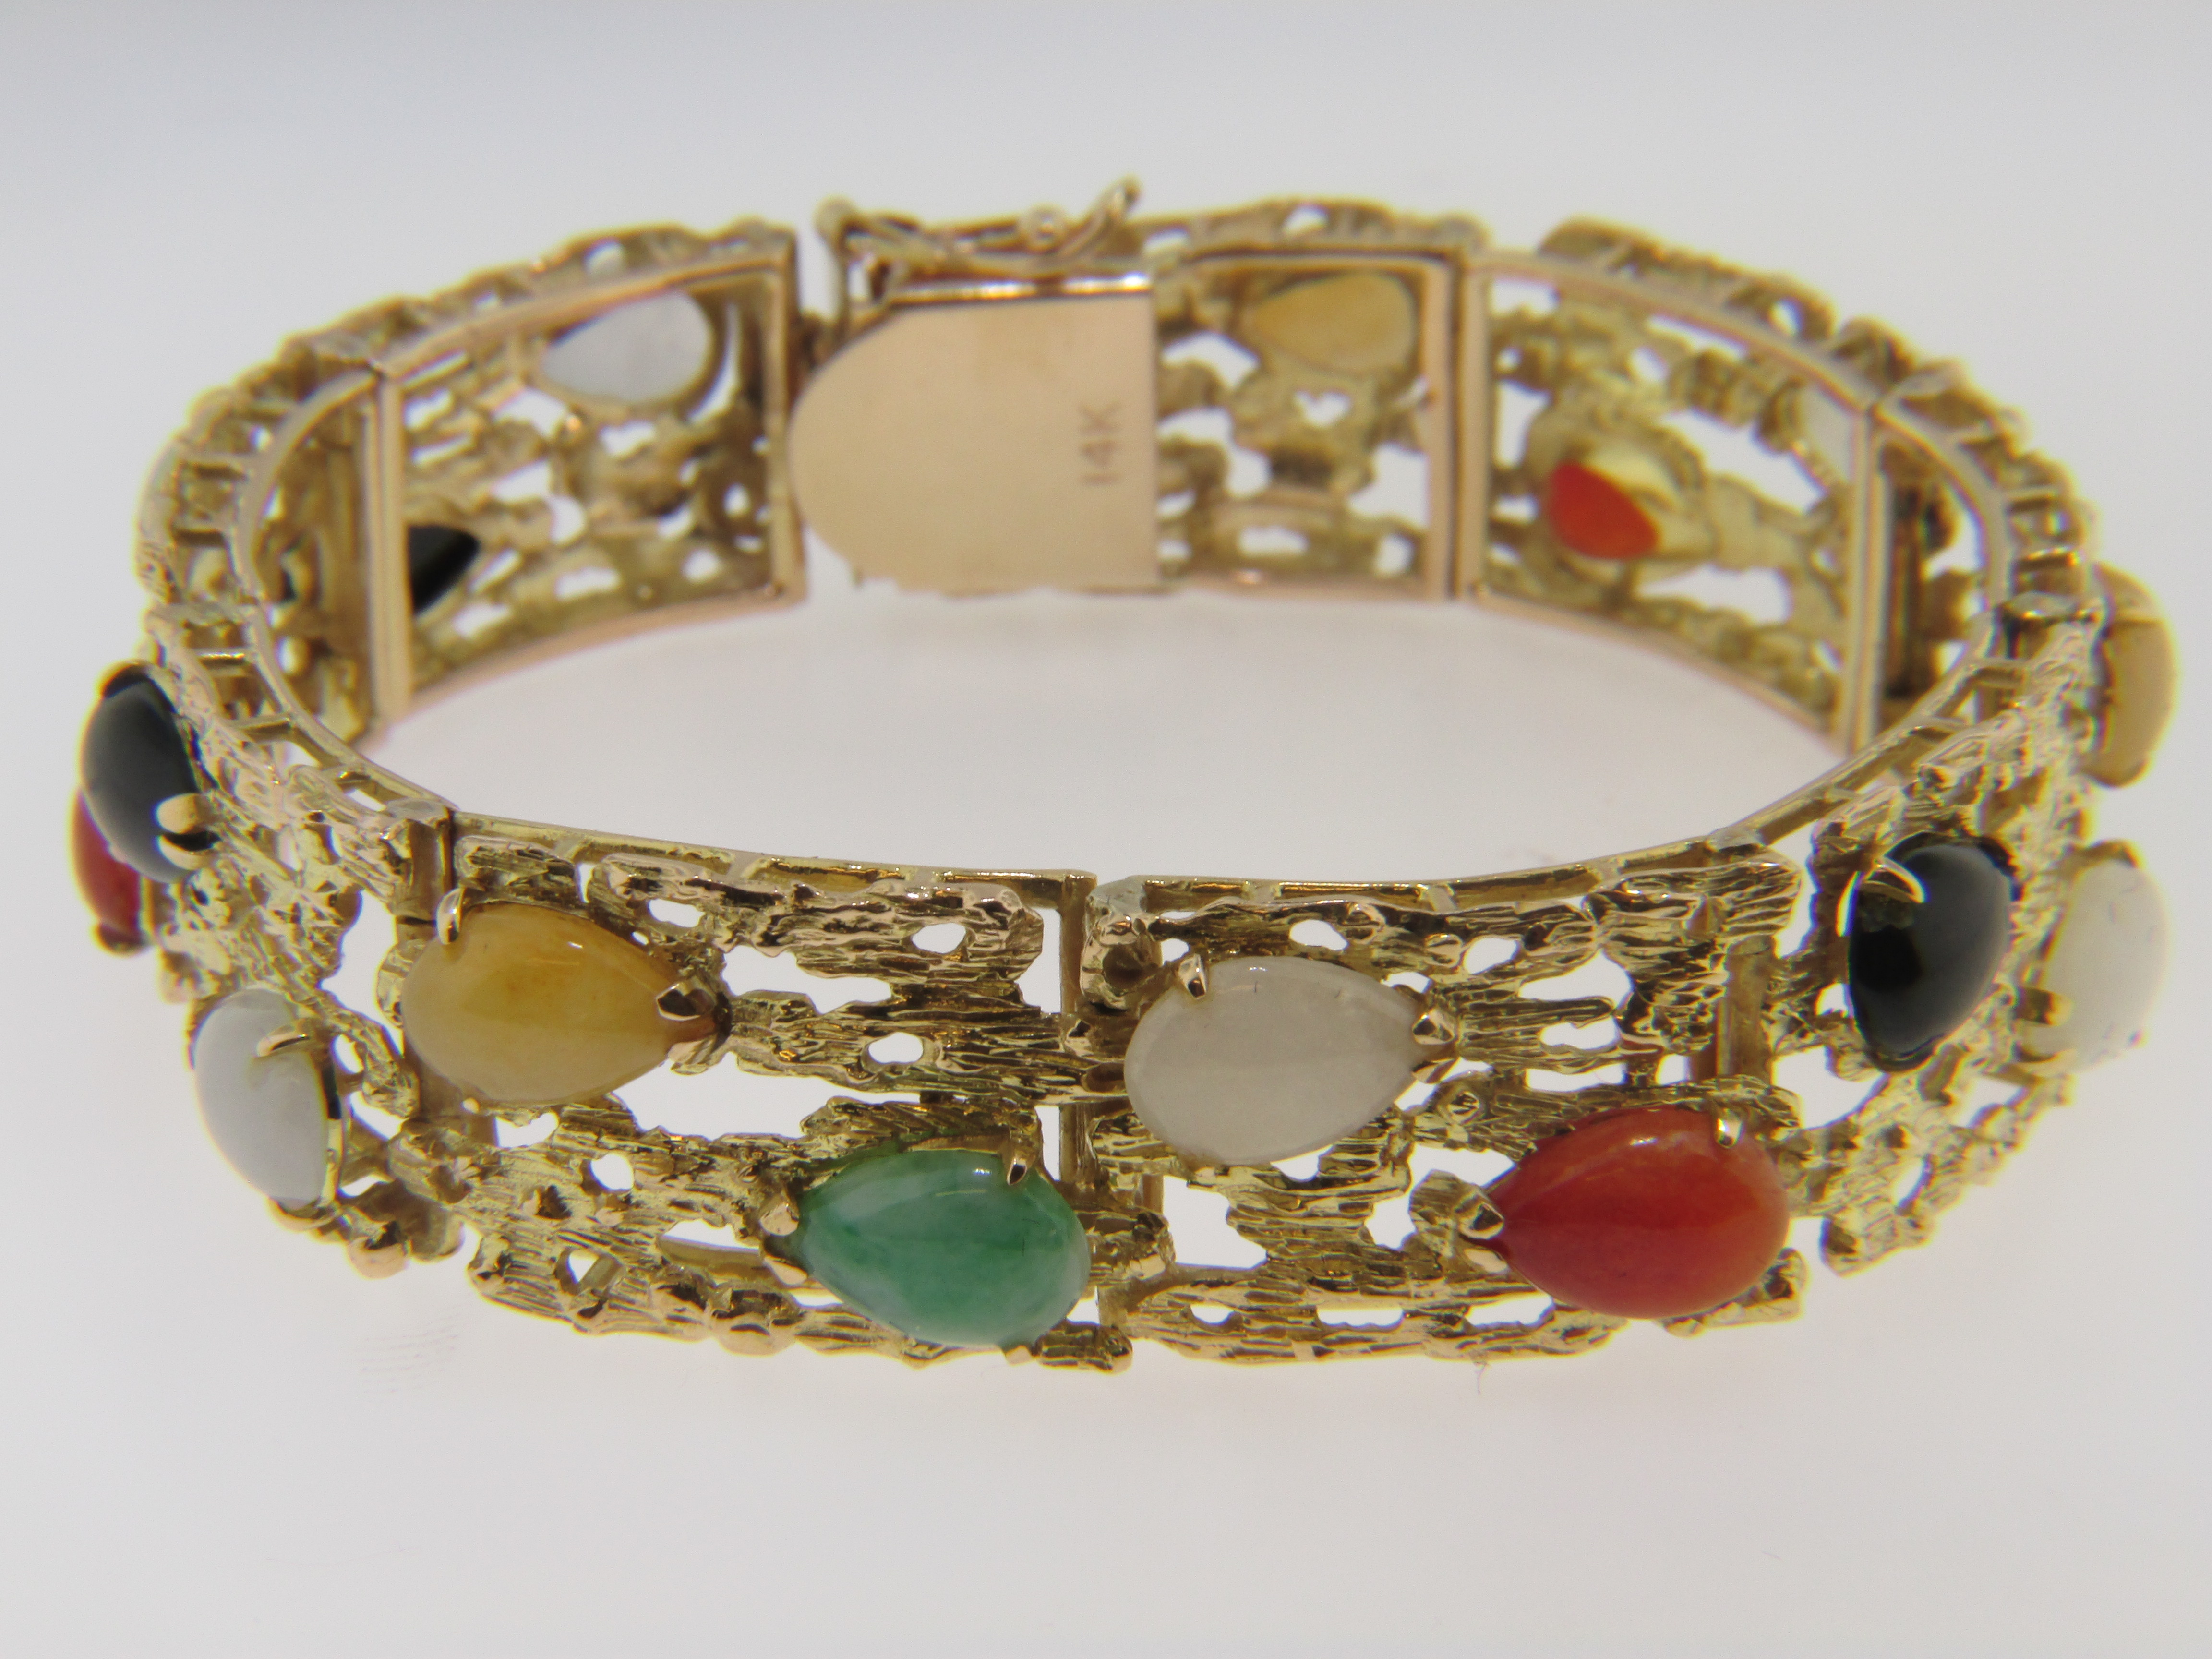 eye jewelry stone stephanie bracelet fine gottlieb preview products colored big